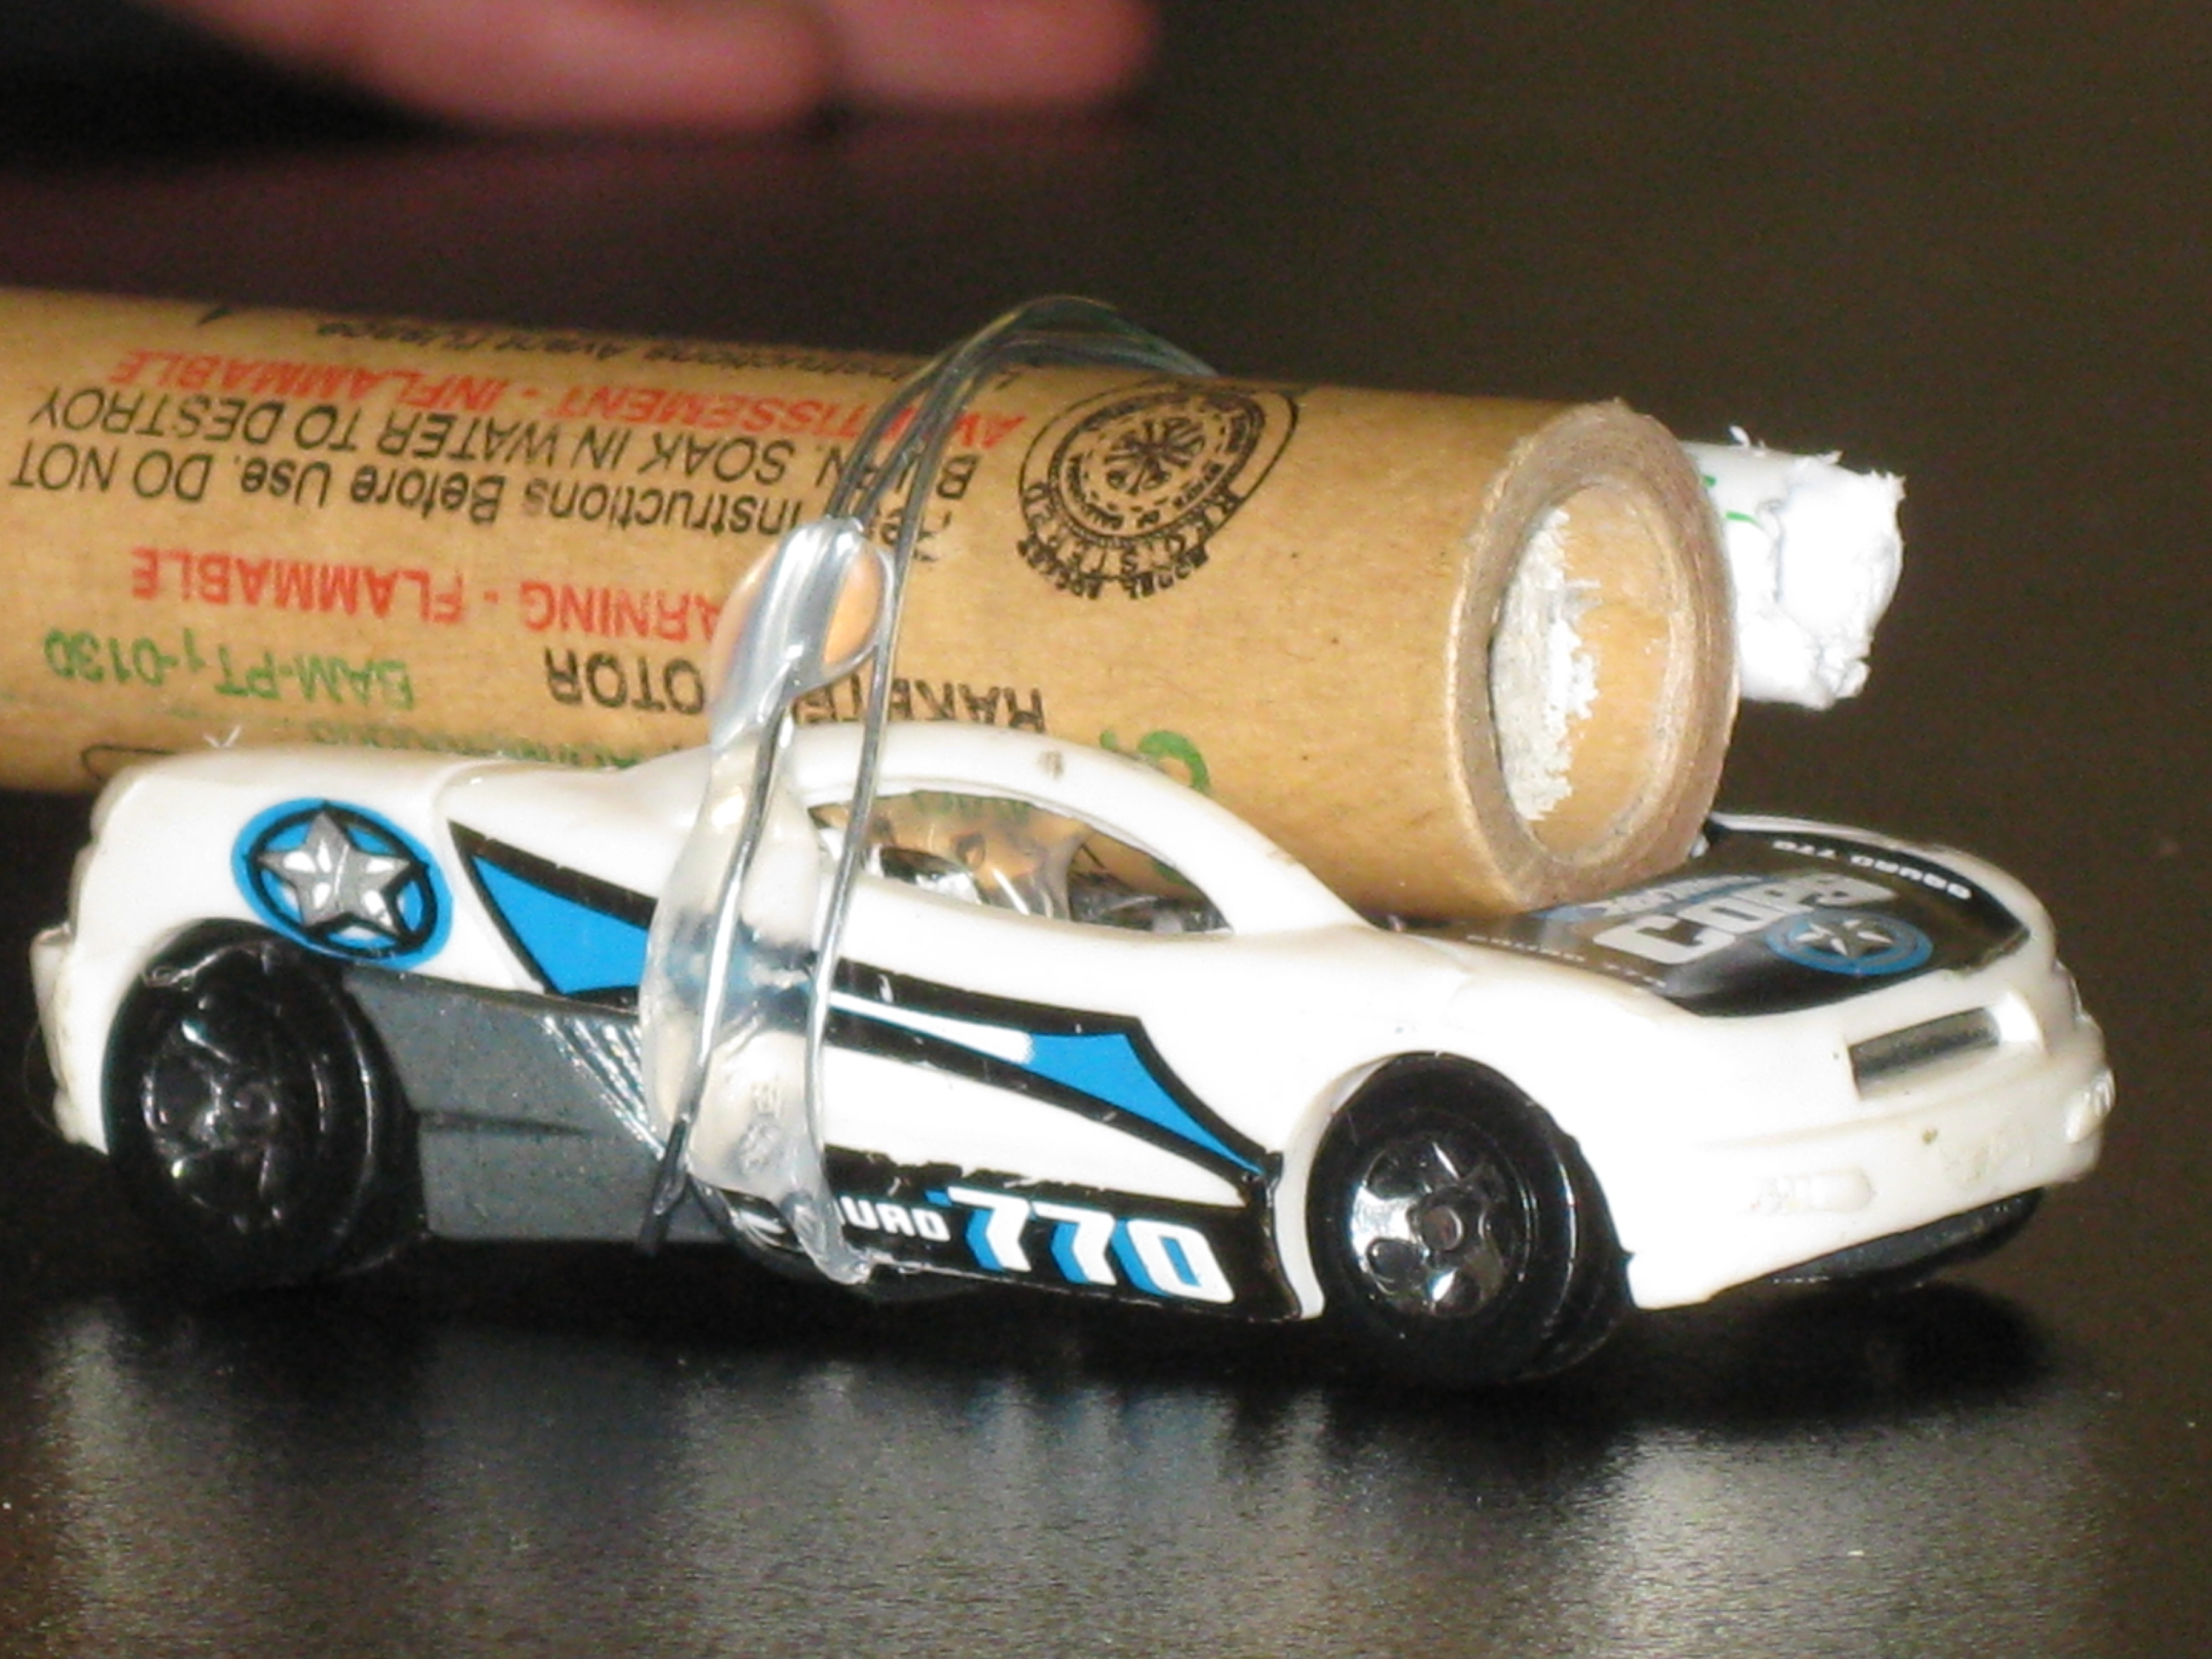 Fire a Hotwheels car with a Rocket and Measure Velocity.